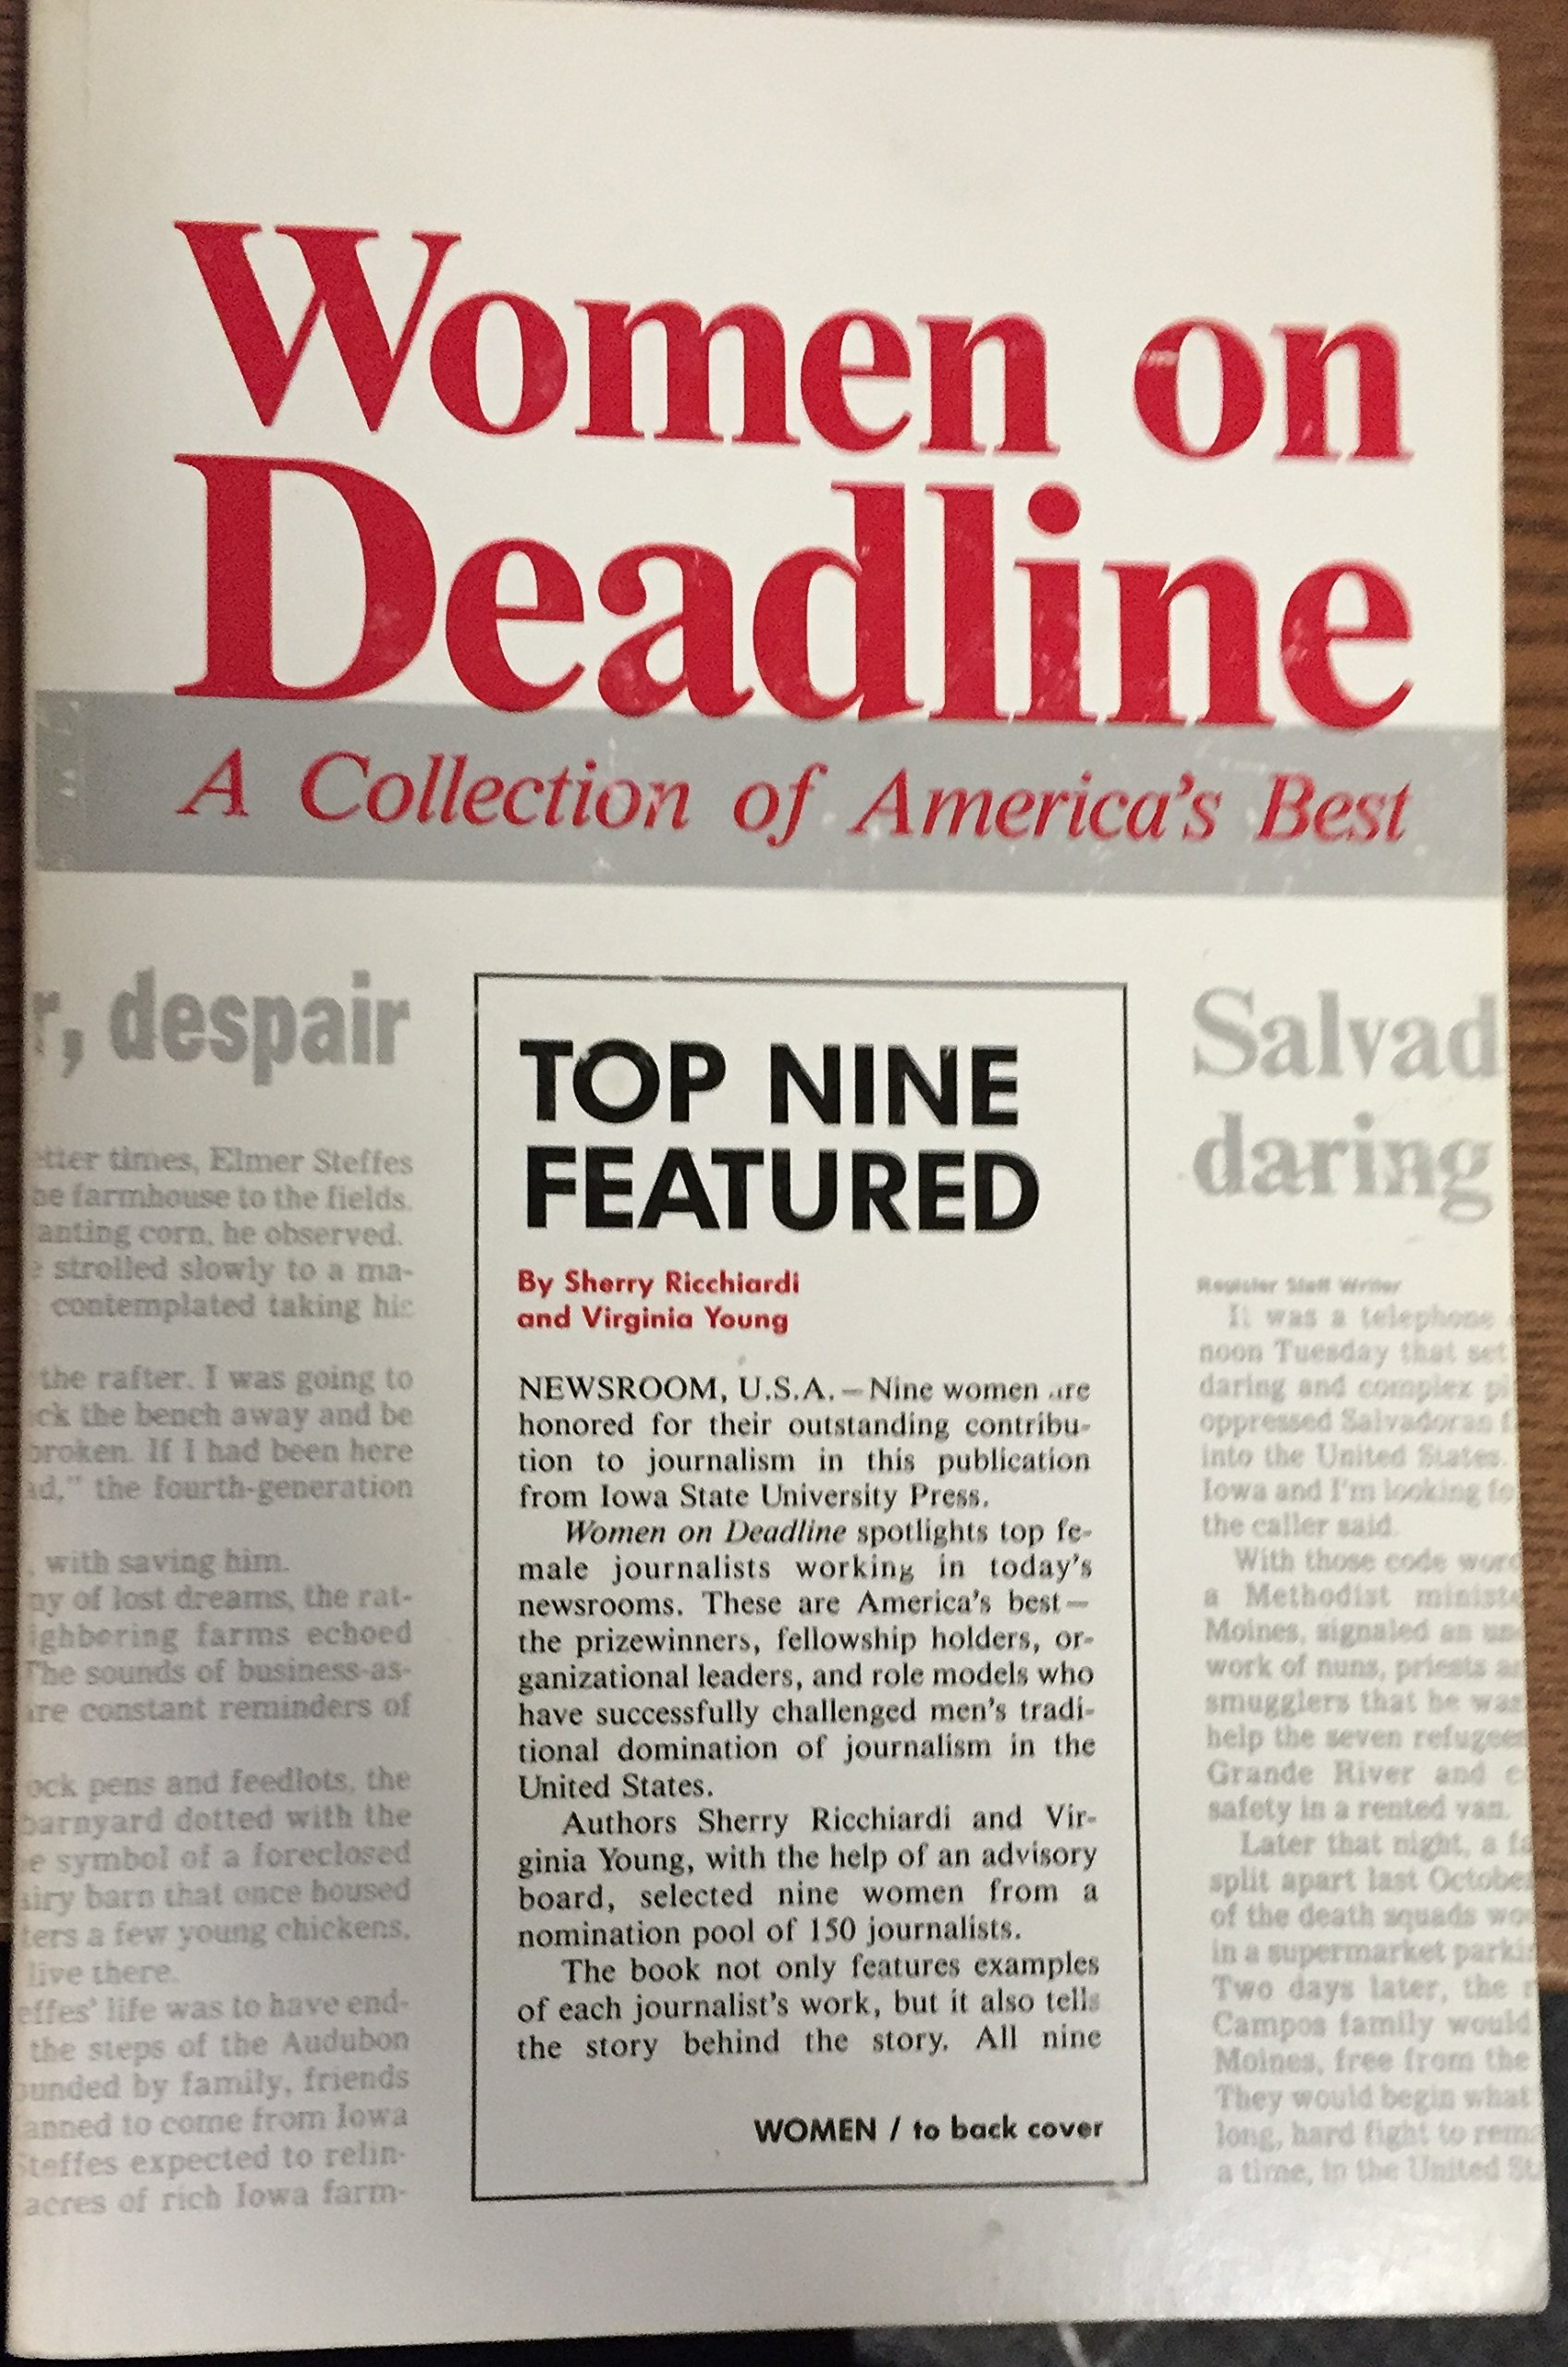 Women on Deadline: A Collection of America's Best